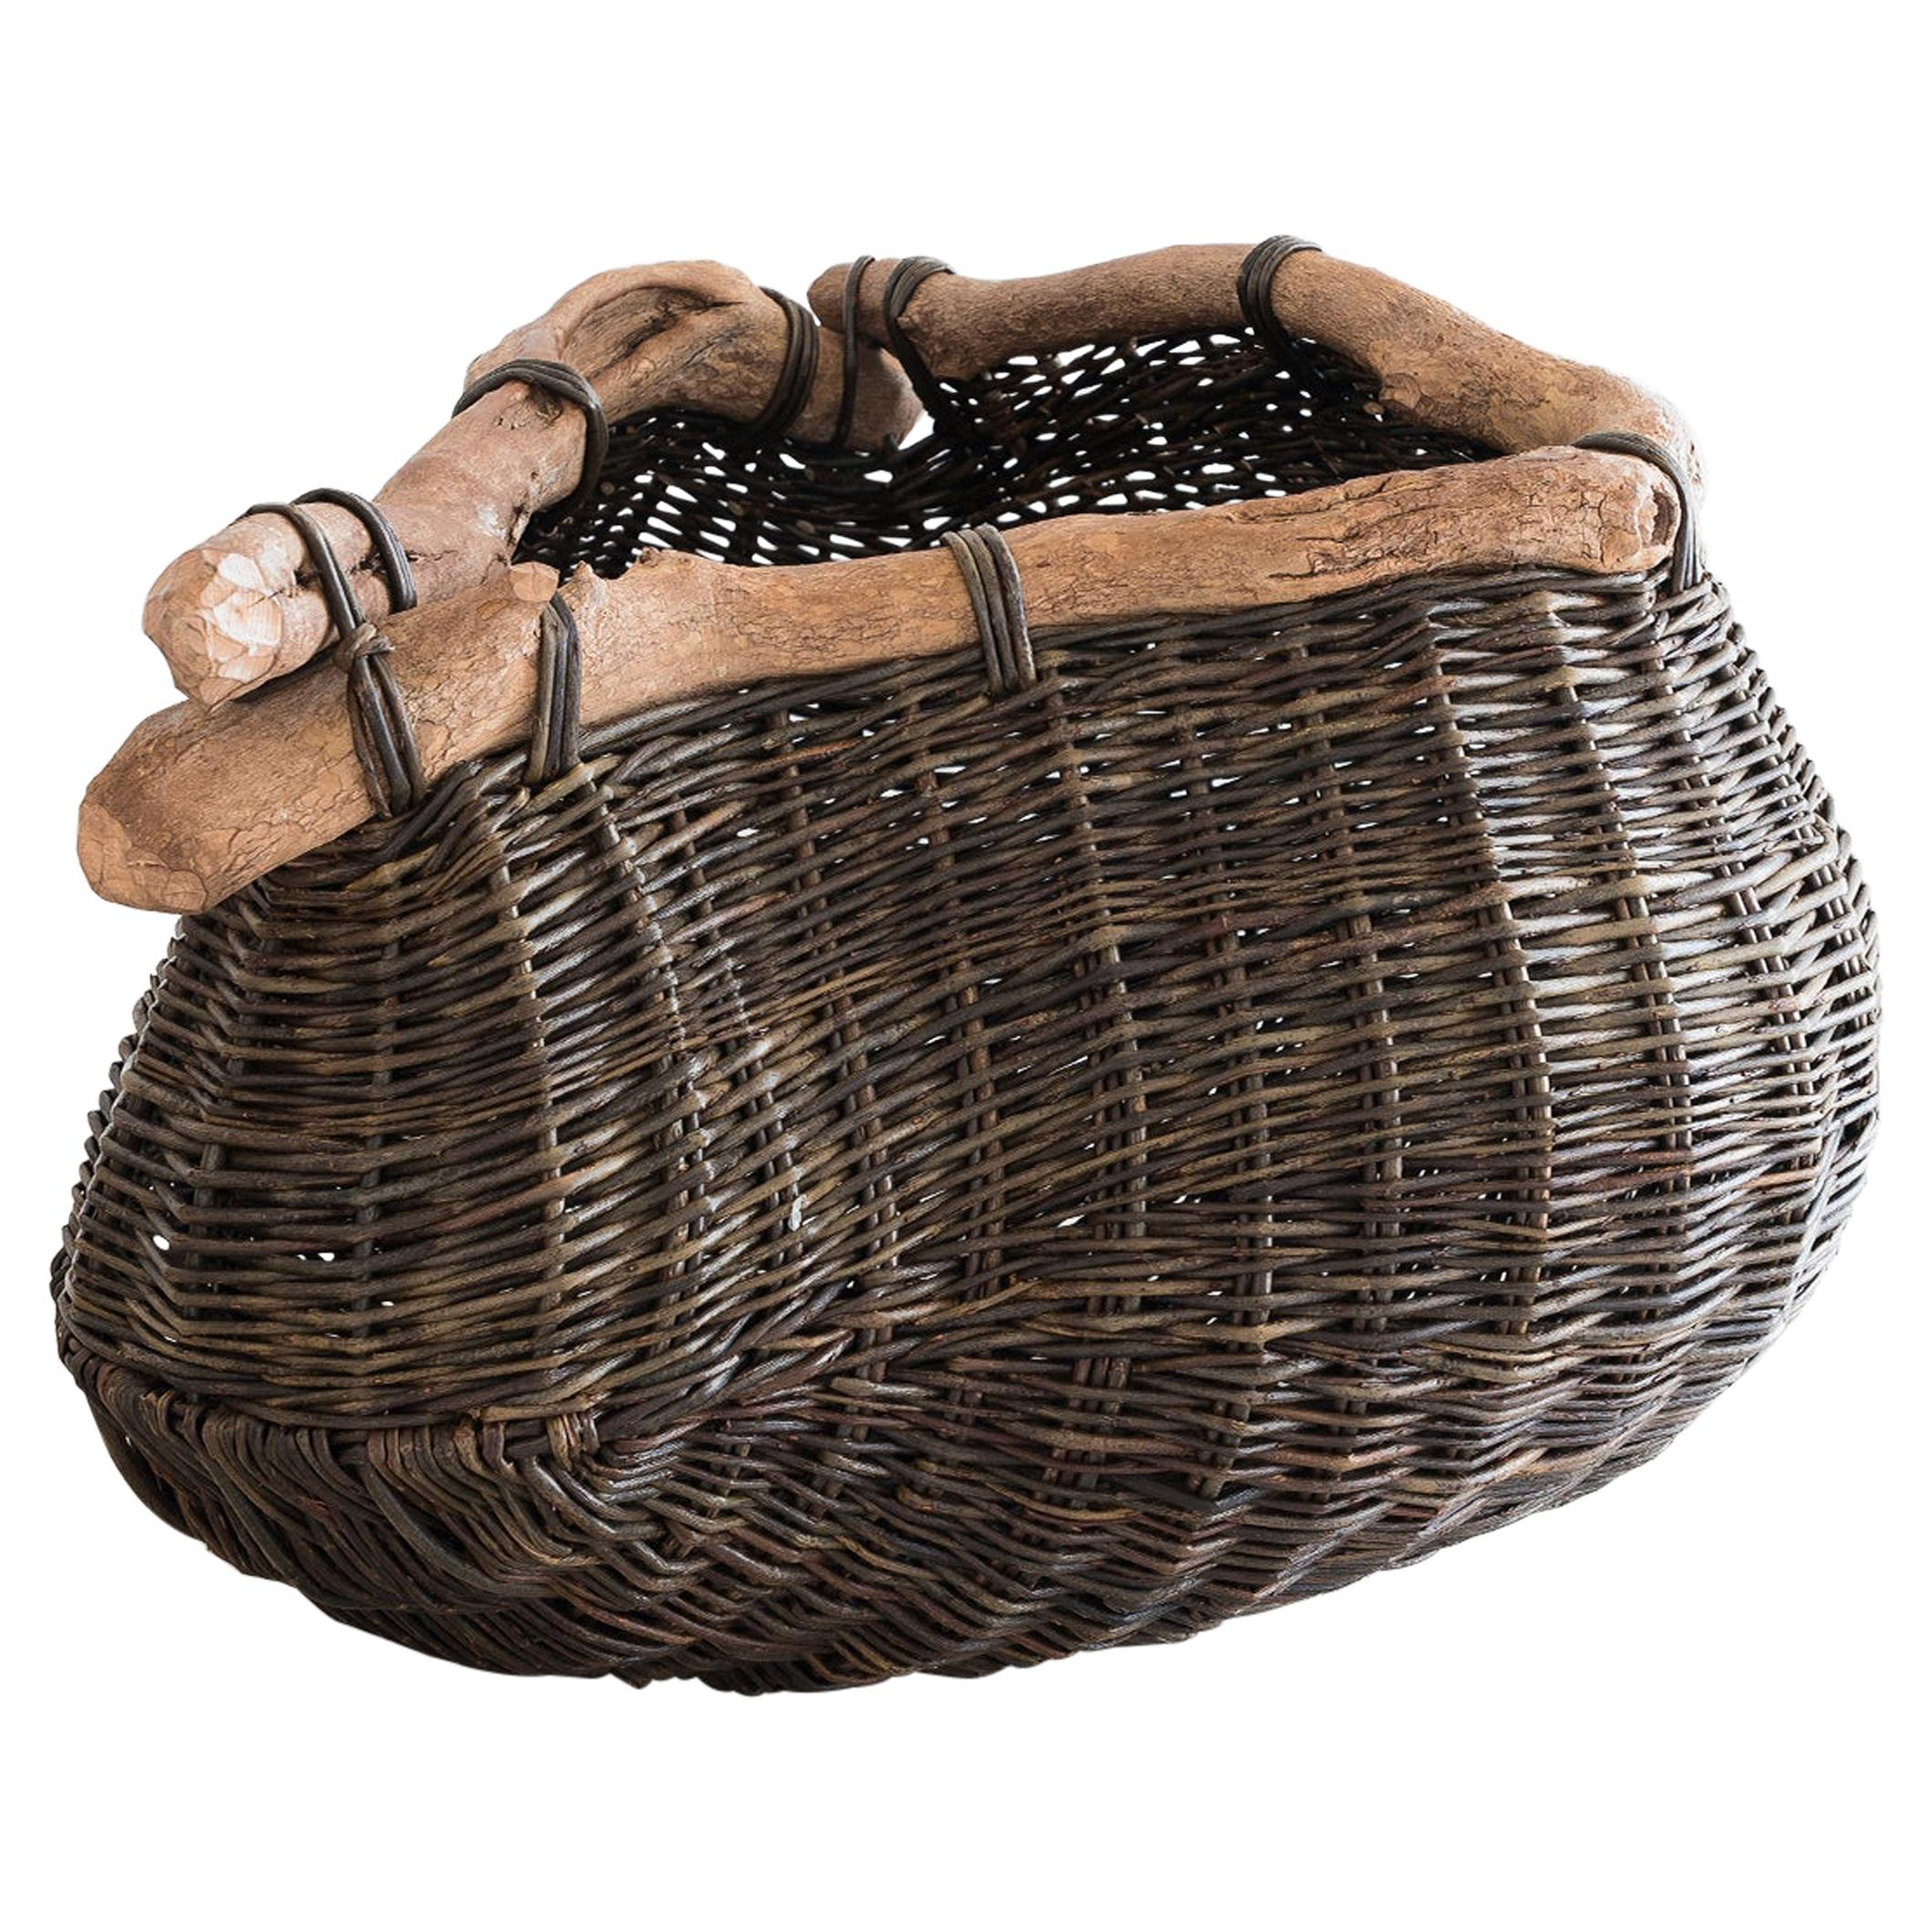 Joe Hogan, Pouch on a bent branch, Rhododendron and Willow Contemporary Basket